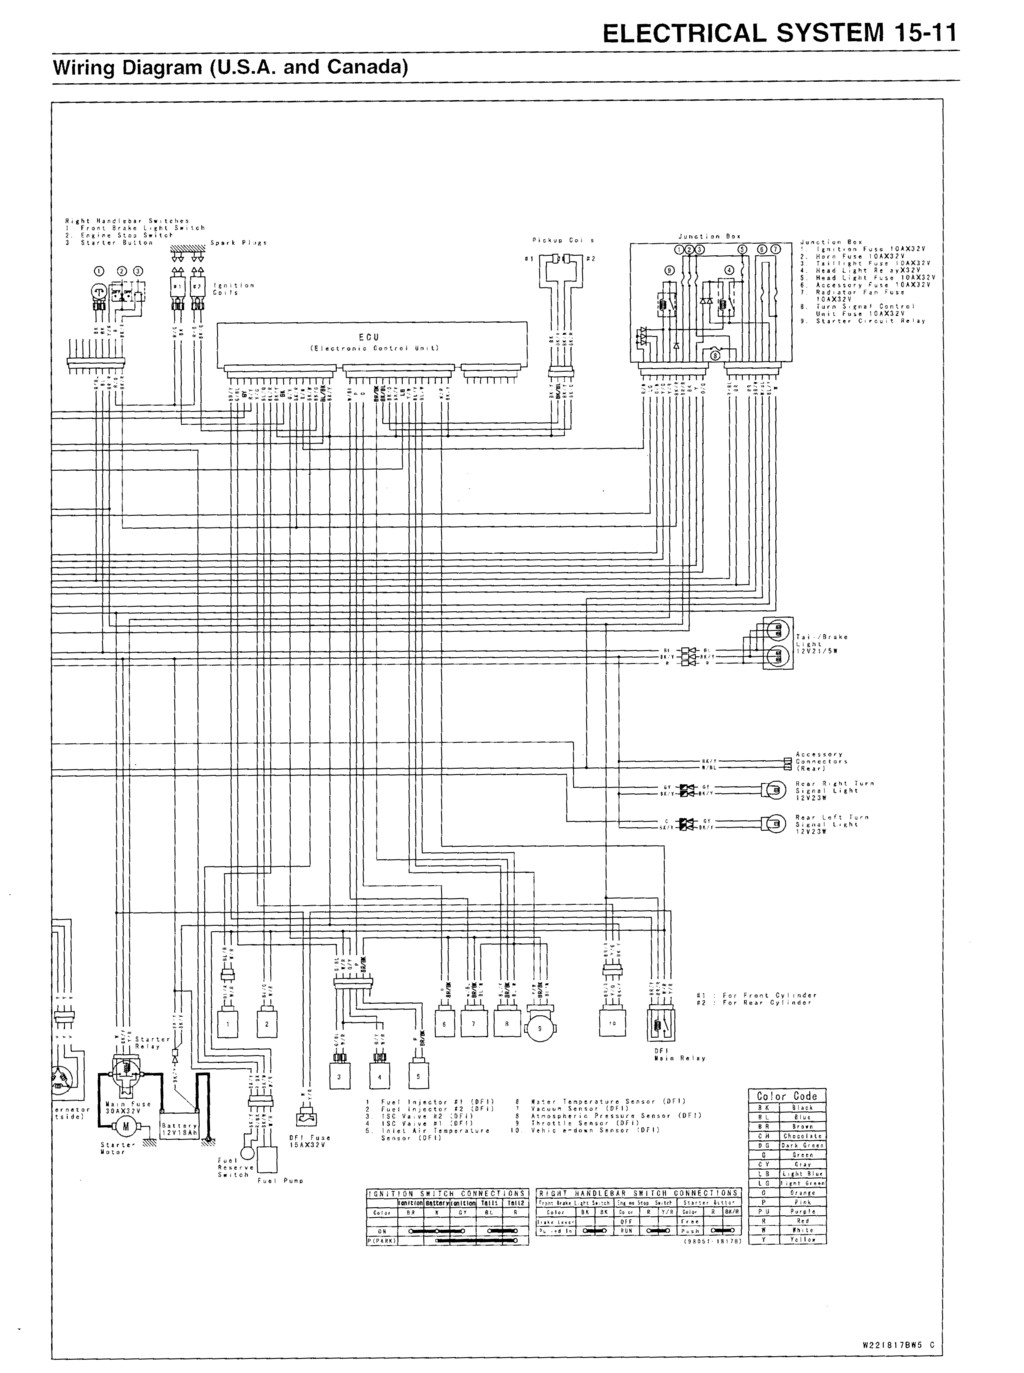 1996 kawasaki vulcan 1500 wiring diagram wiring diagram. Black Bedroom Furniture Sets. Home Design Ideas